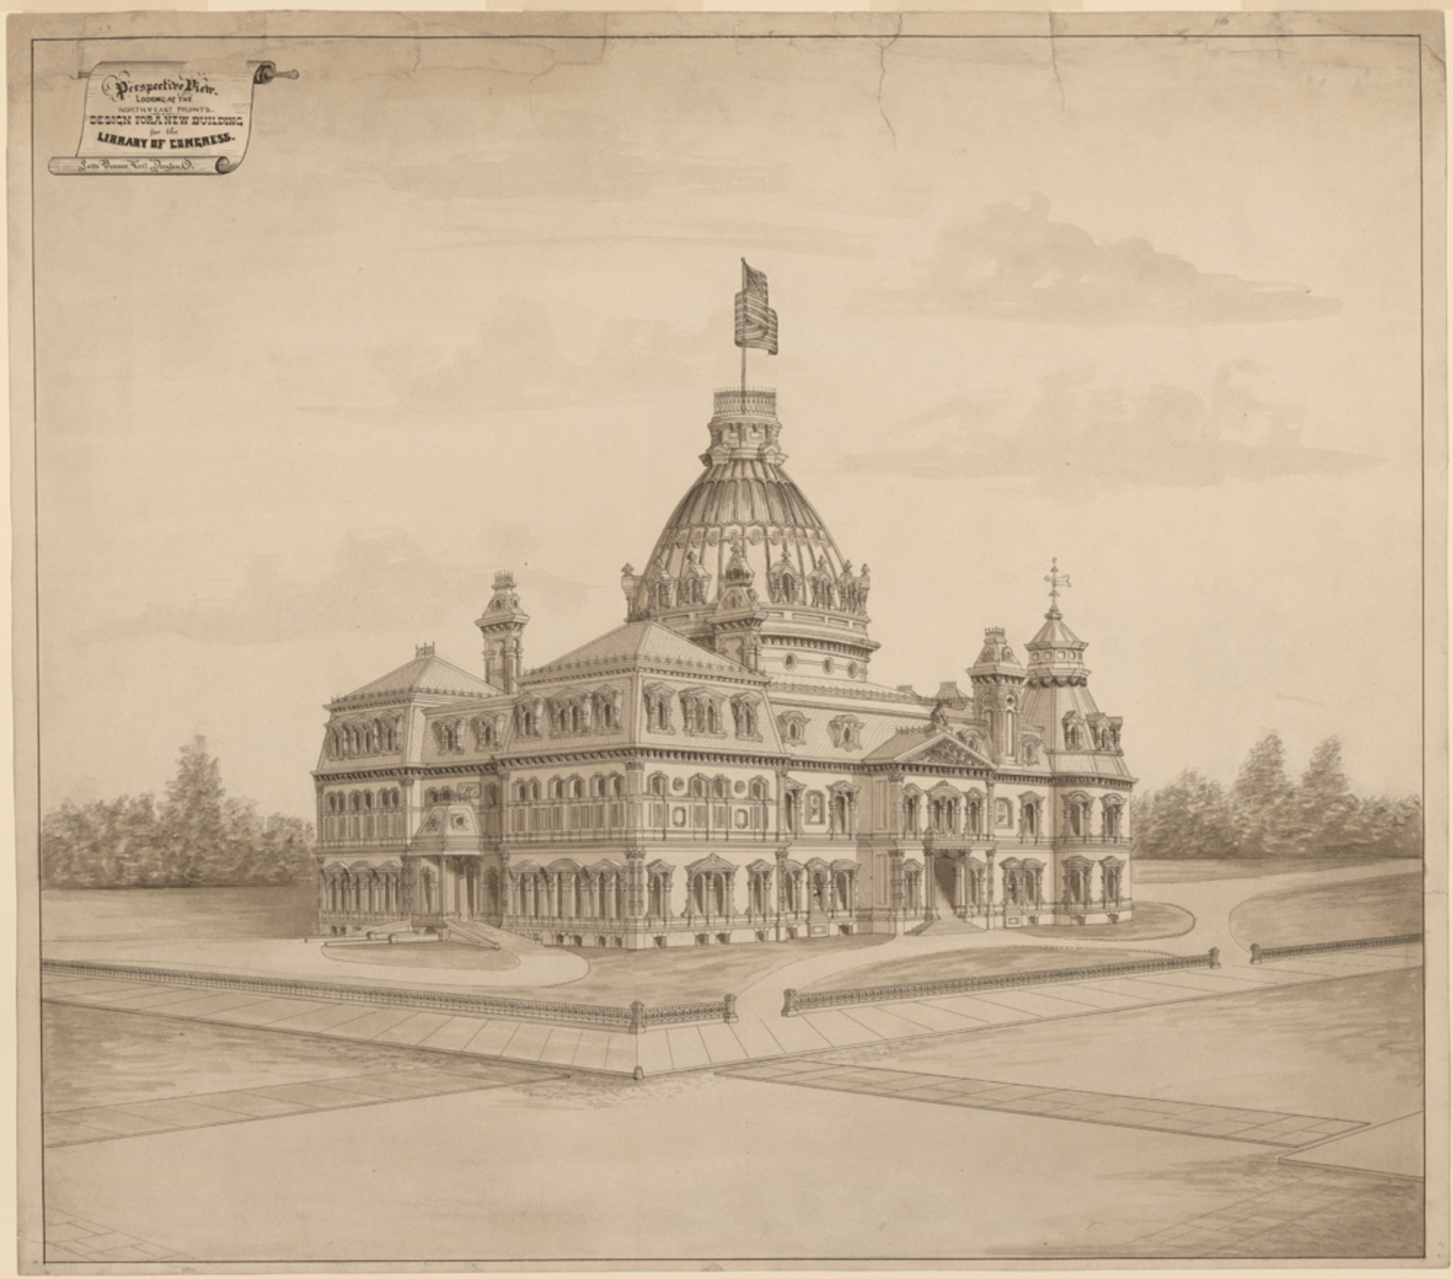 Competition entry for the Library of Congress by Leon Beaver, 1873. Credit: Library of Congress, Prints and Photographs Division, LC-DIG-ppmsca-31512